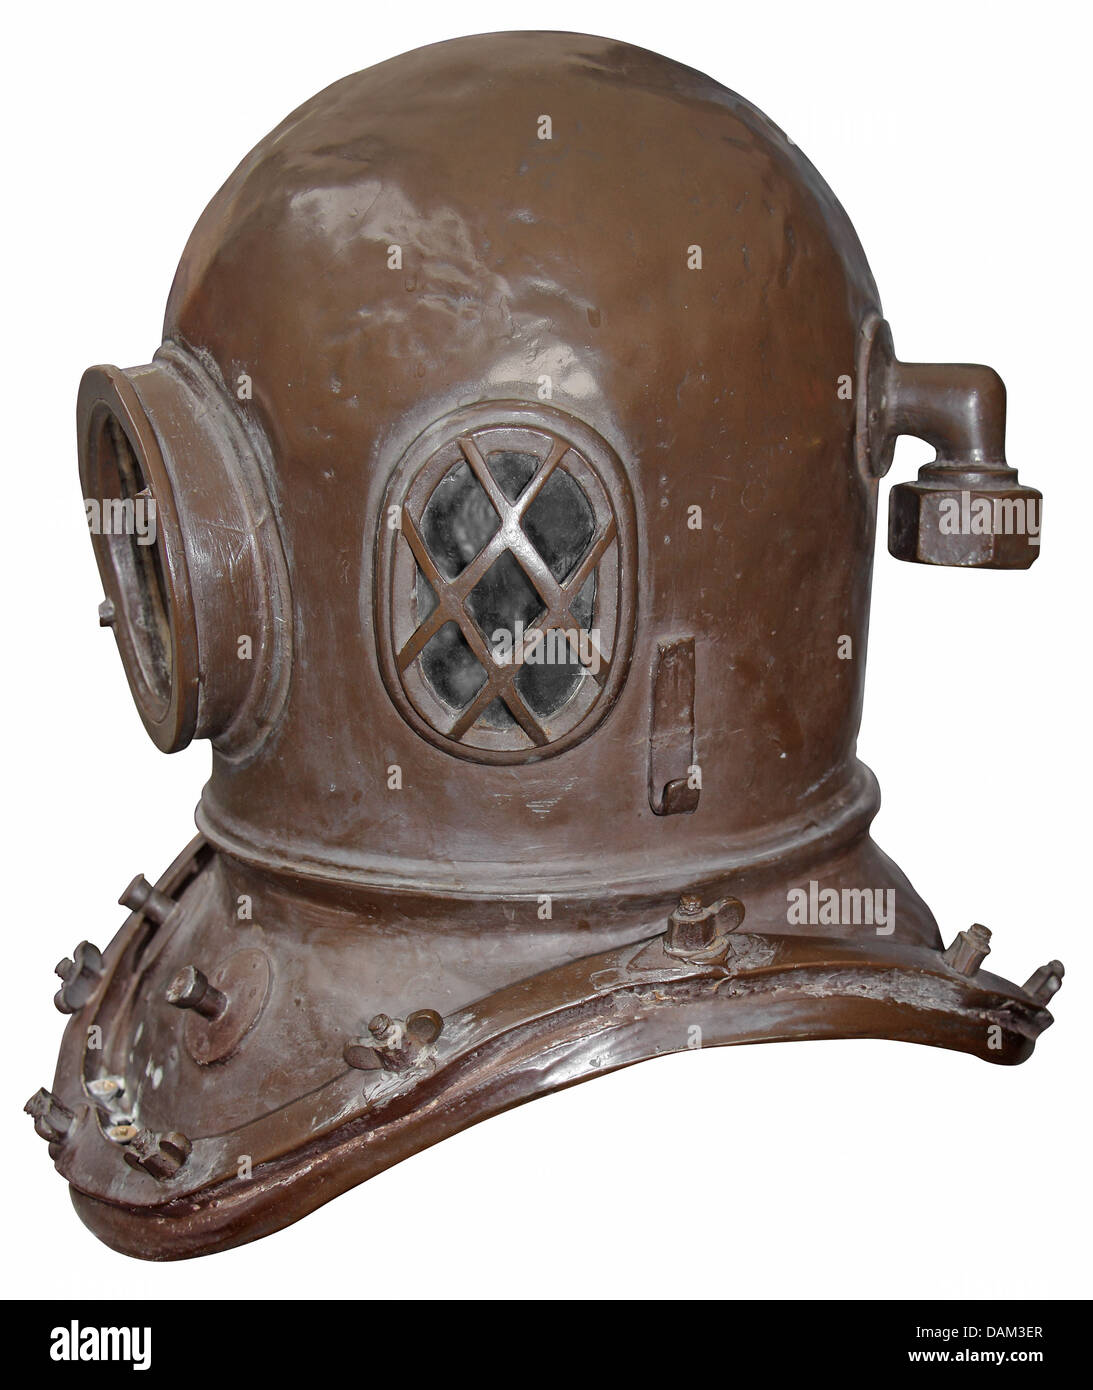 Old diving helmet isolated on white background - Stock Image